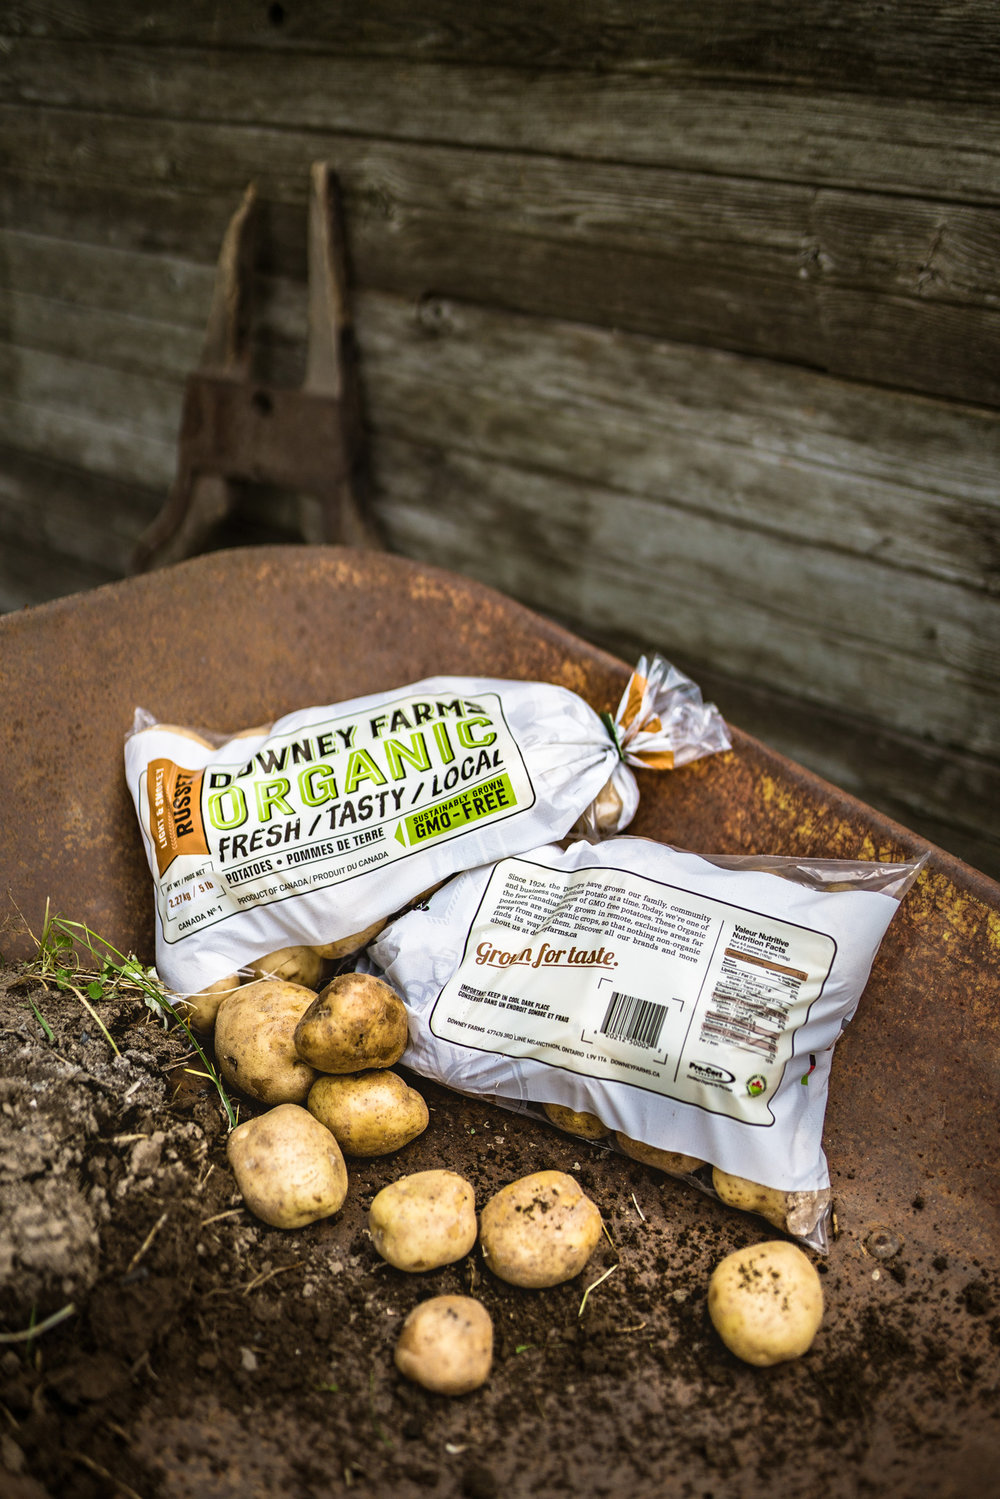 Downey Farms Organic Potatoes in a wheel barrow. Featuring packaging design by Touchwood Design.